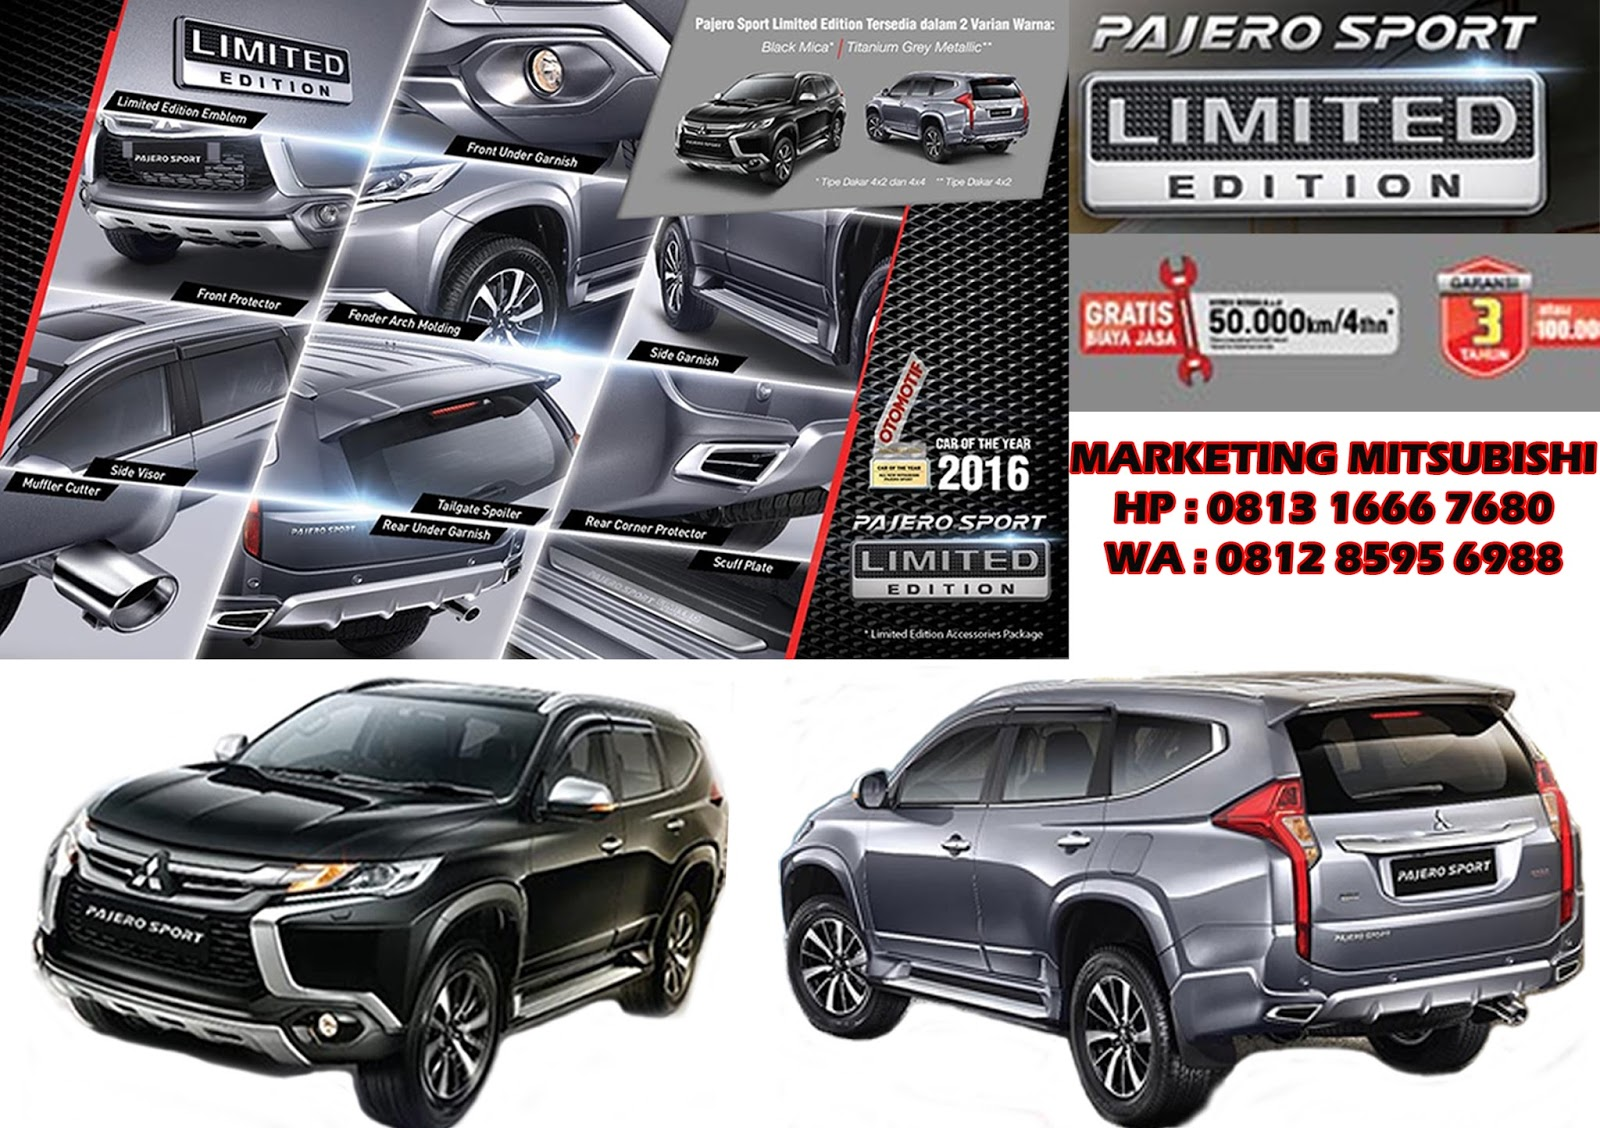 Harga All New Pajero Sport Limited Edition | DEALER ...